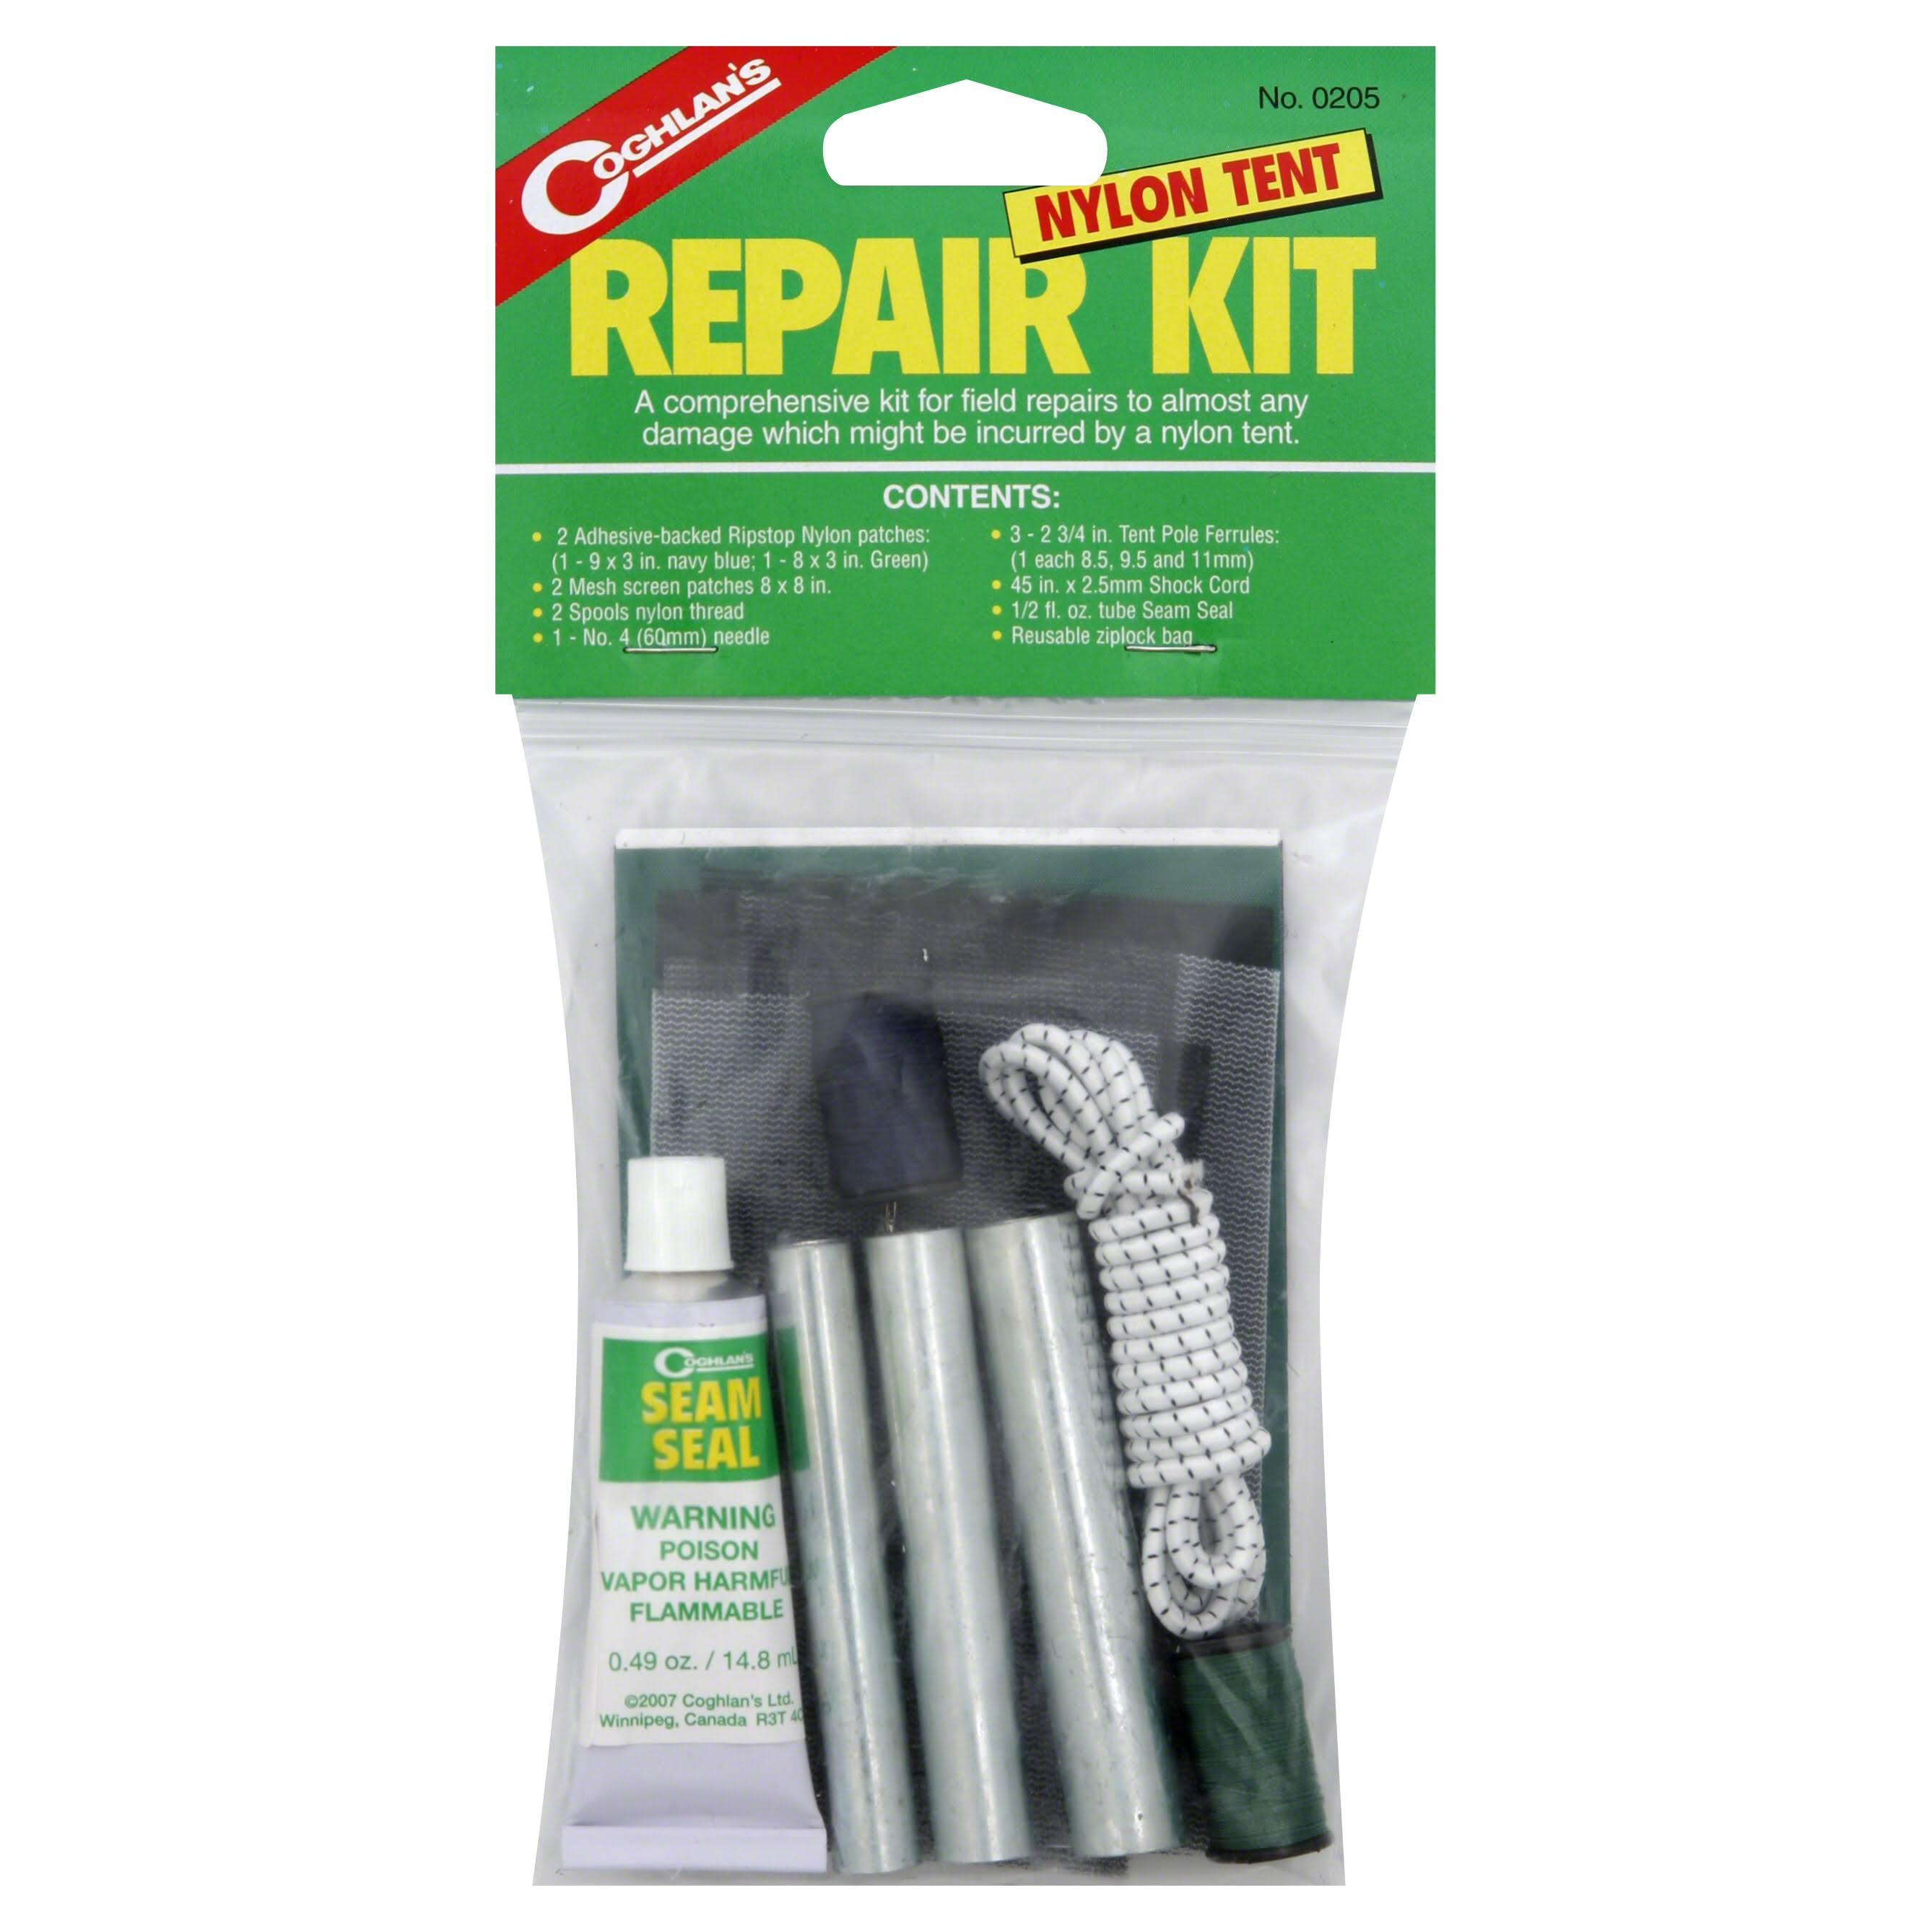 Coughlan's Nylon Tent Repair Kit